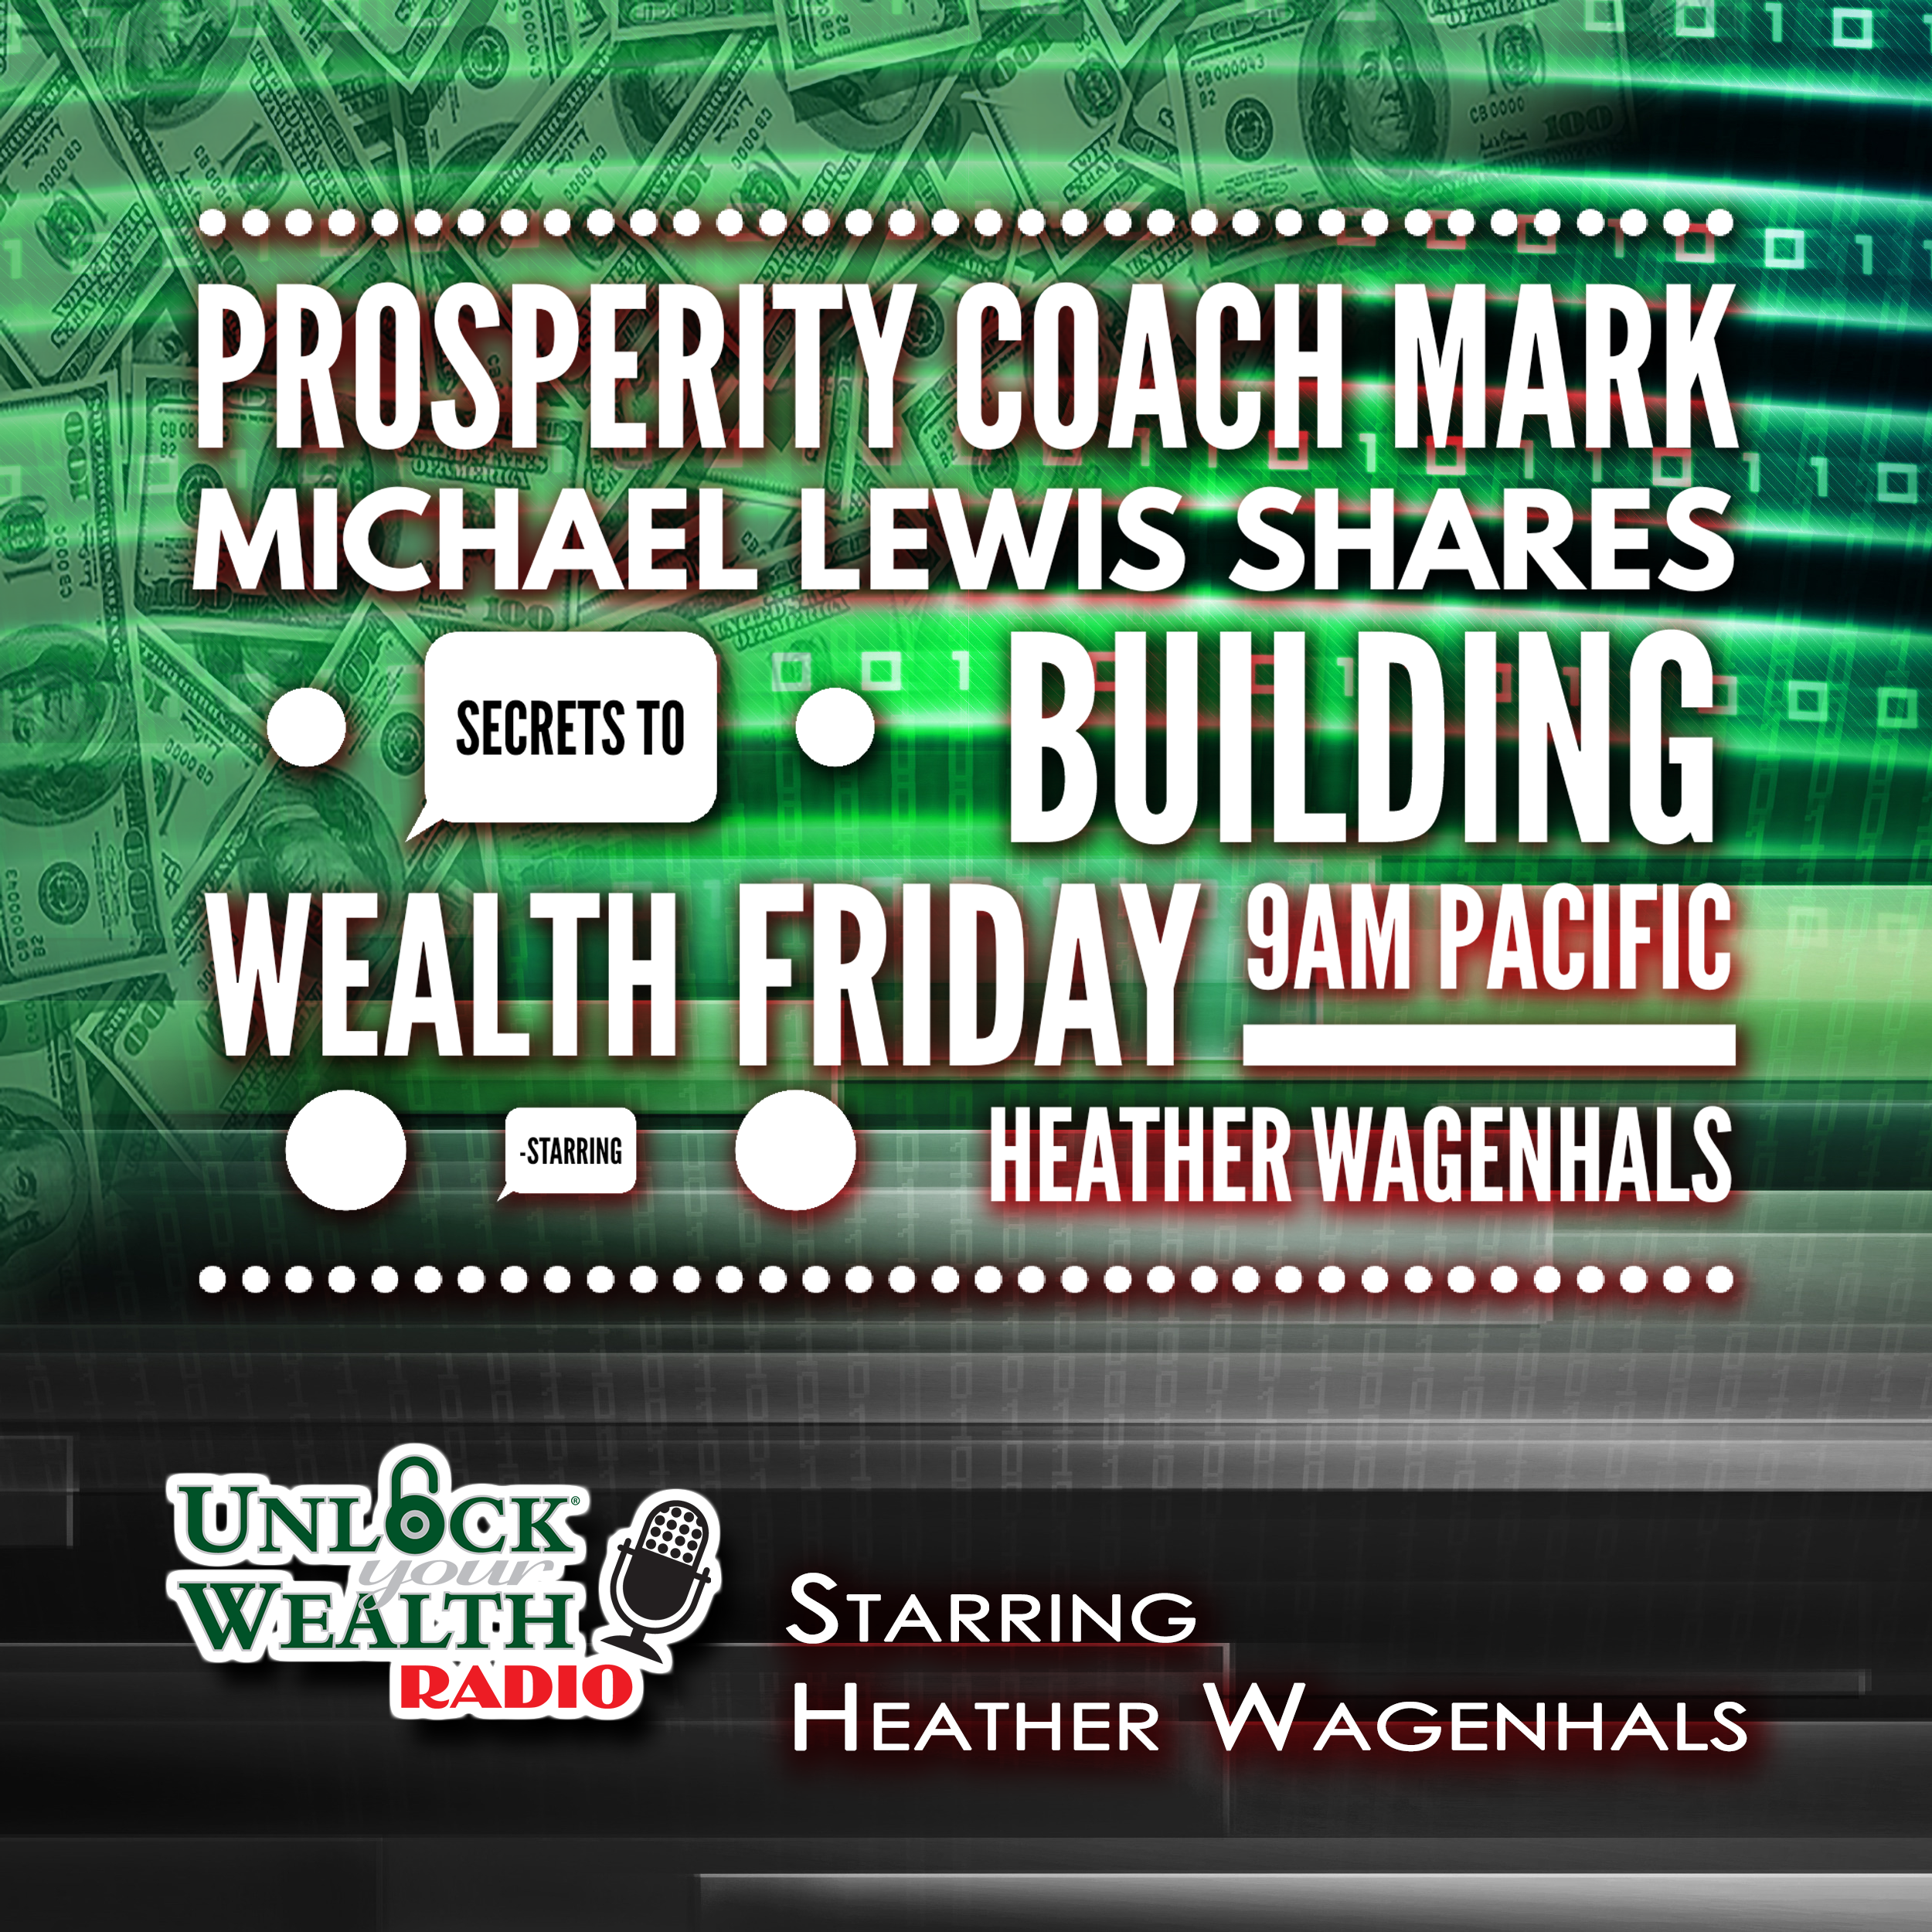 Profitability Coach Mark Michael Lewis Defines True Wealth on Unlock Your Wealth Radio Starring Heather Wagenhals